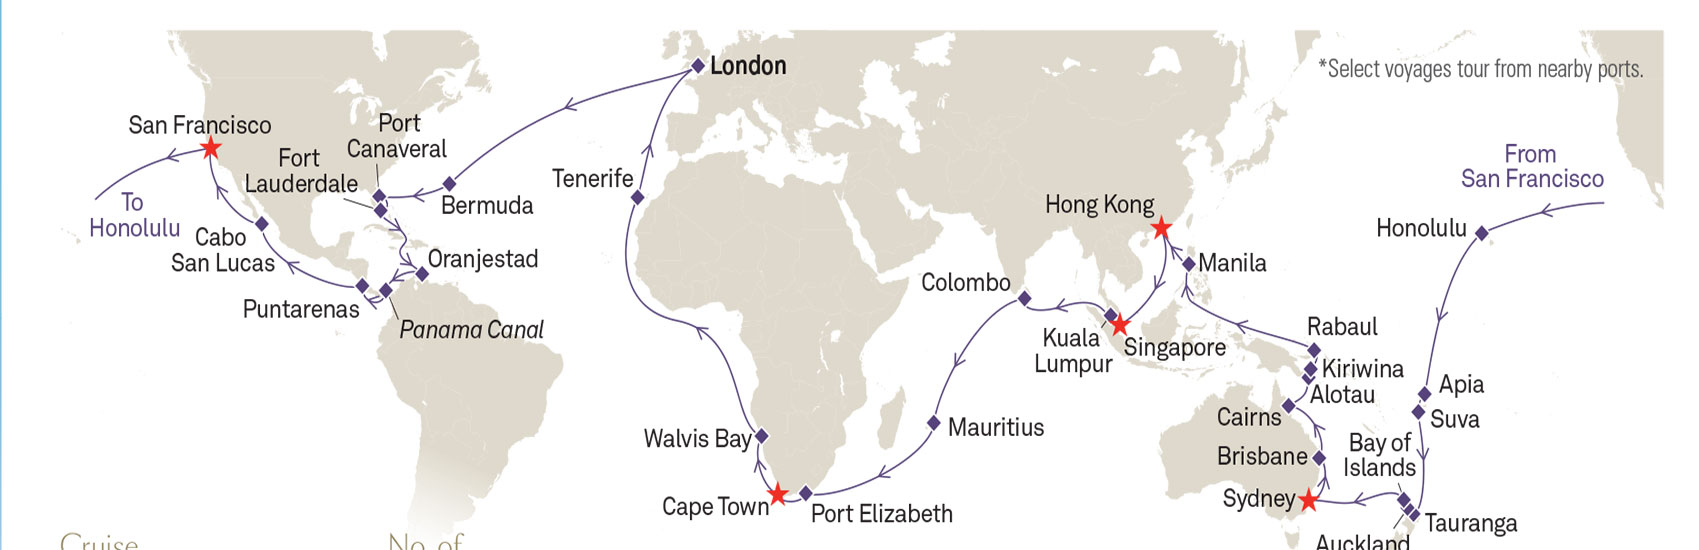 The World Voyage by Cunard 1